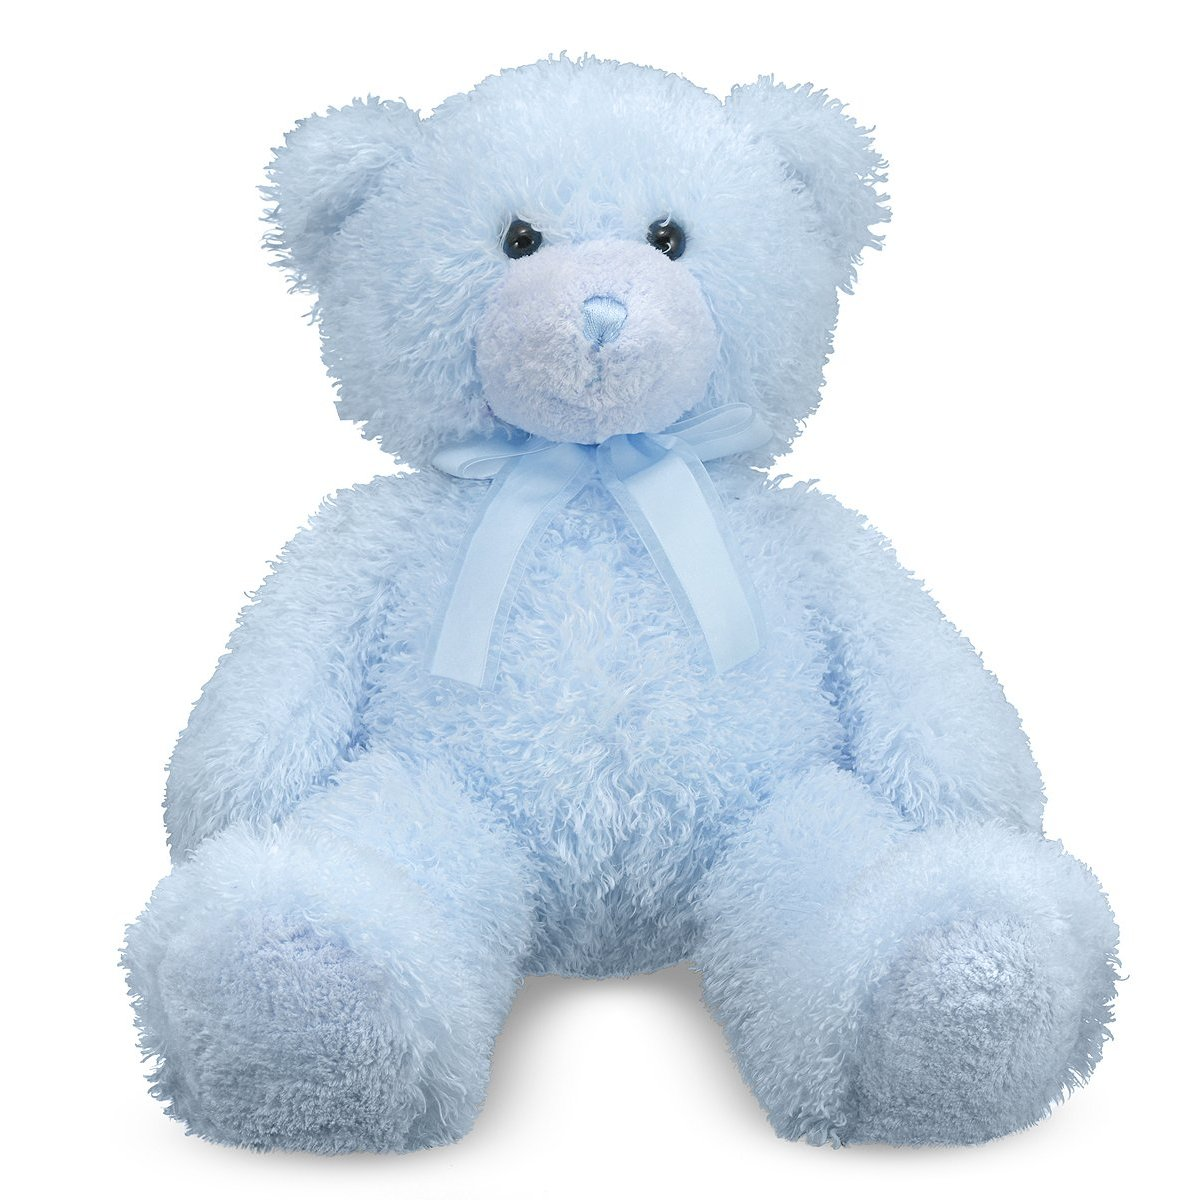 Stuffed Animals Images Teddy Bear Blue Hd Wallpaper And Background